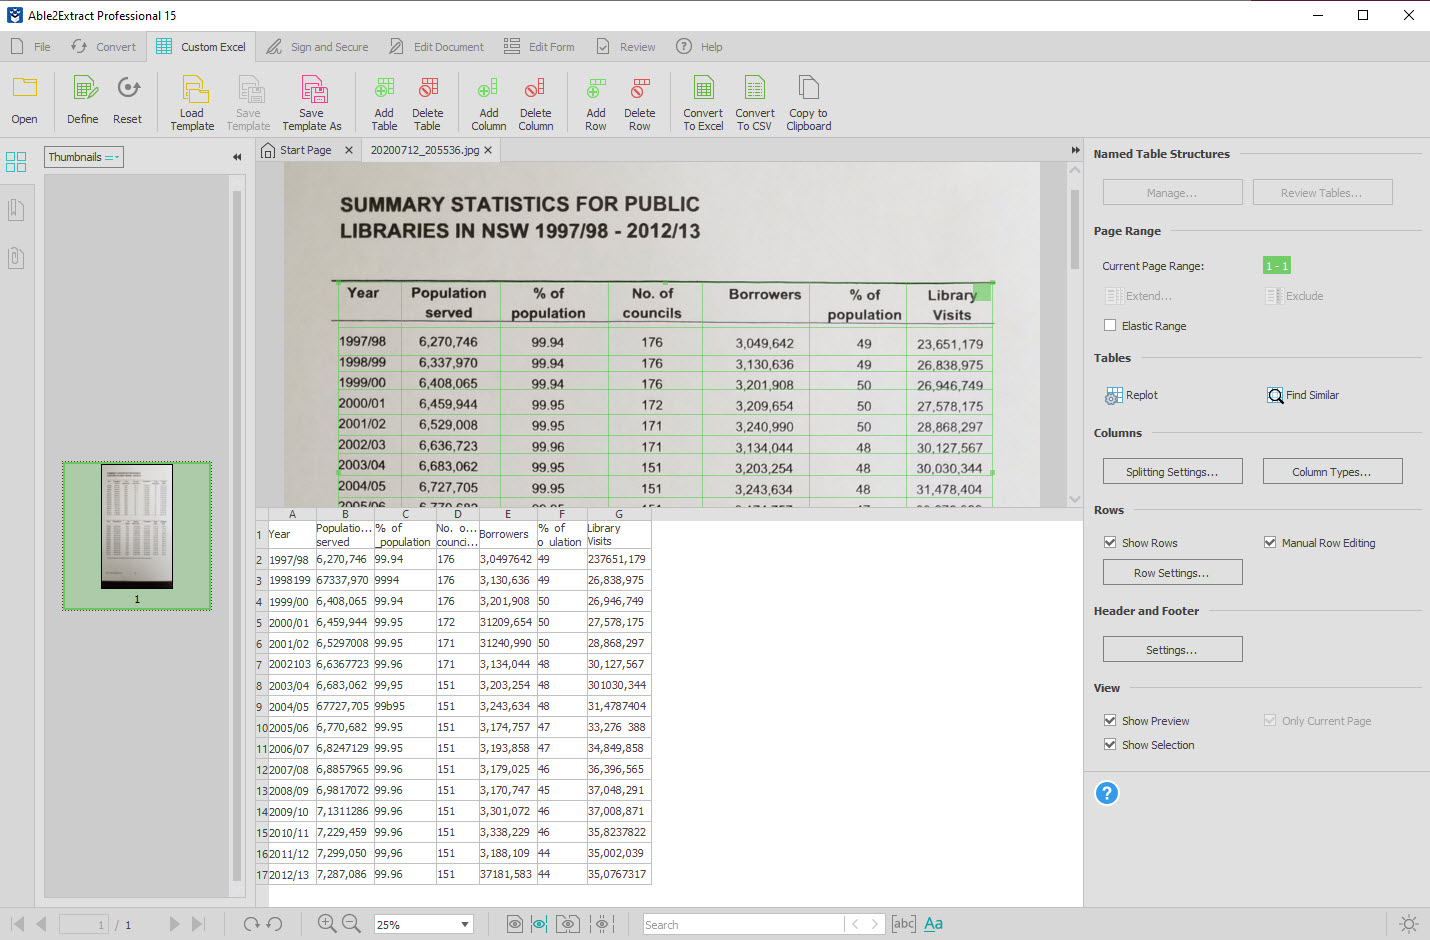 Customizing table conversion in the Custom Excel mode